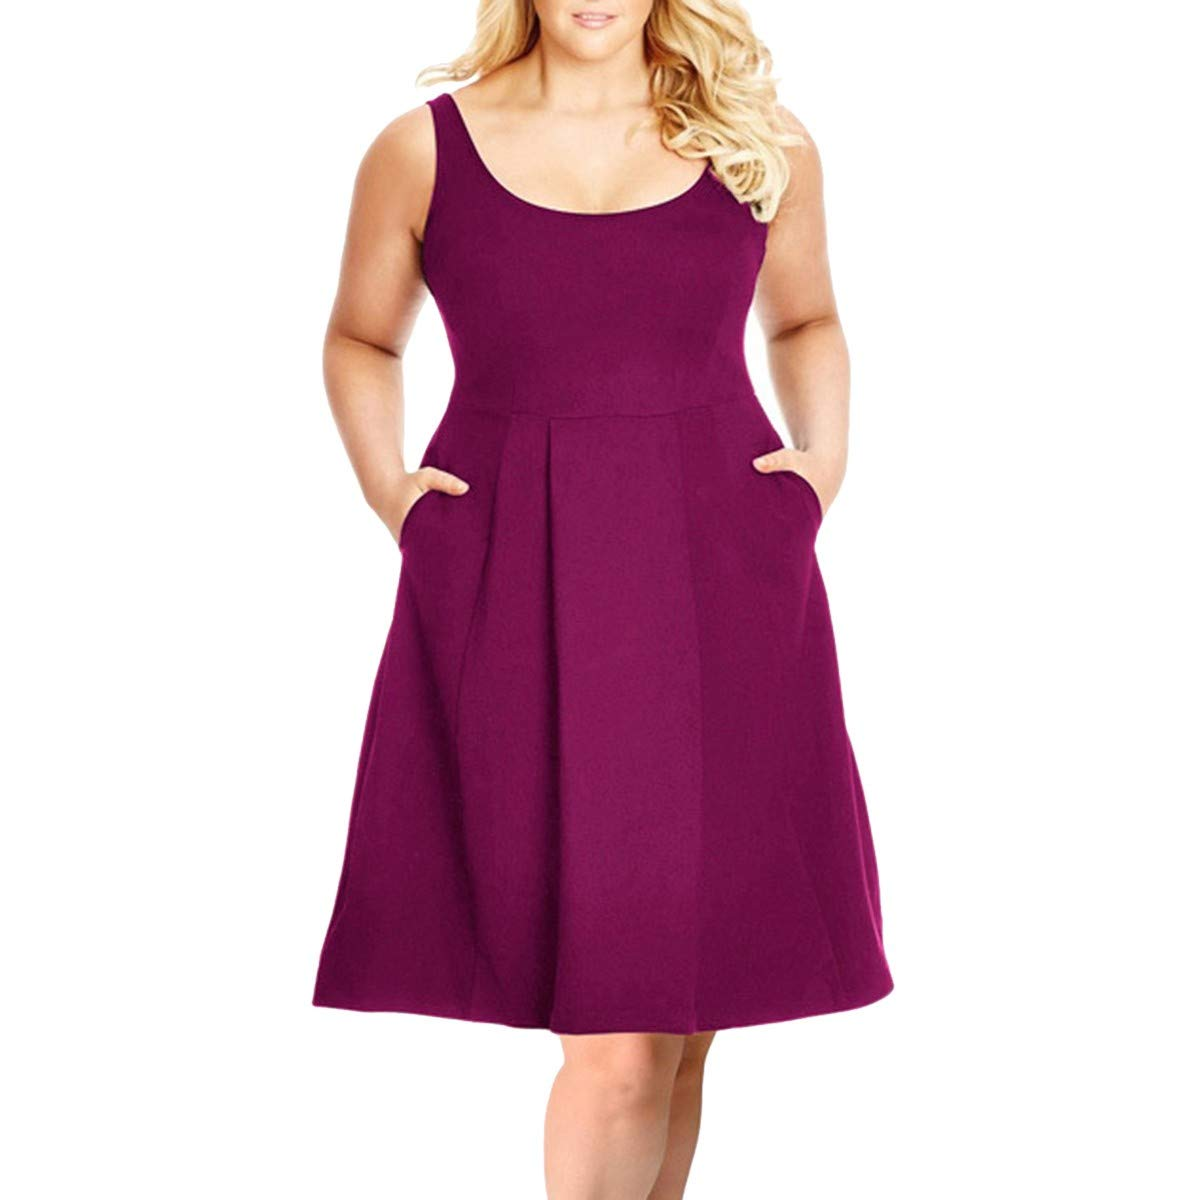 71d89e756c3 Classic solid color women s plus size tank dress with pockets featuring  soft stretchy fabric